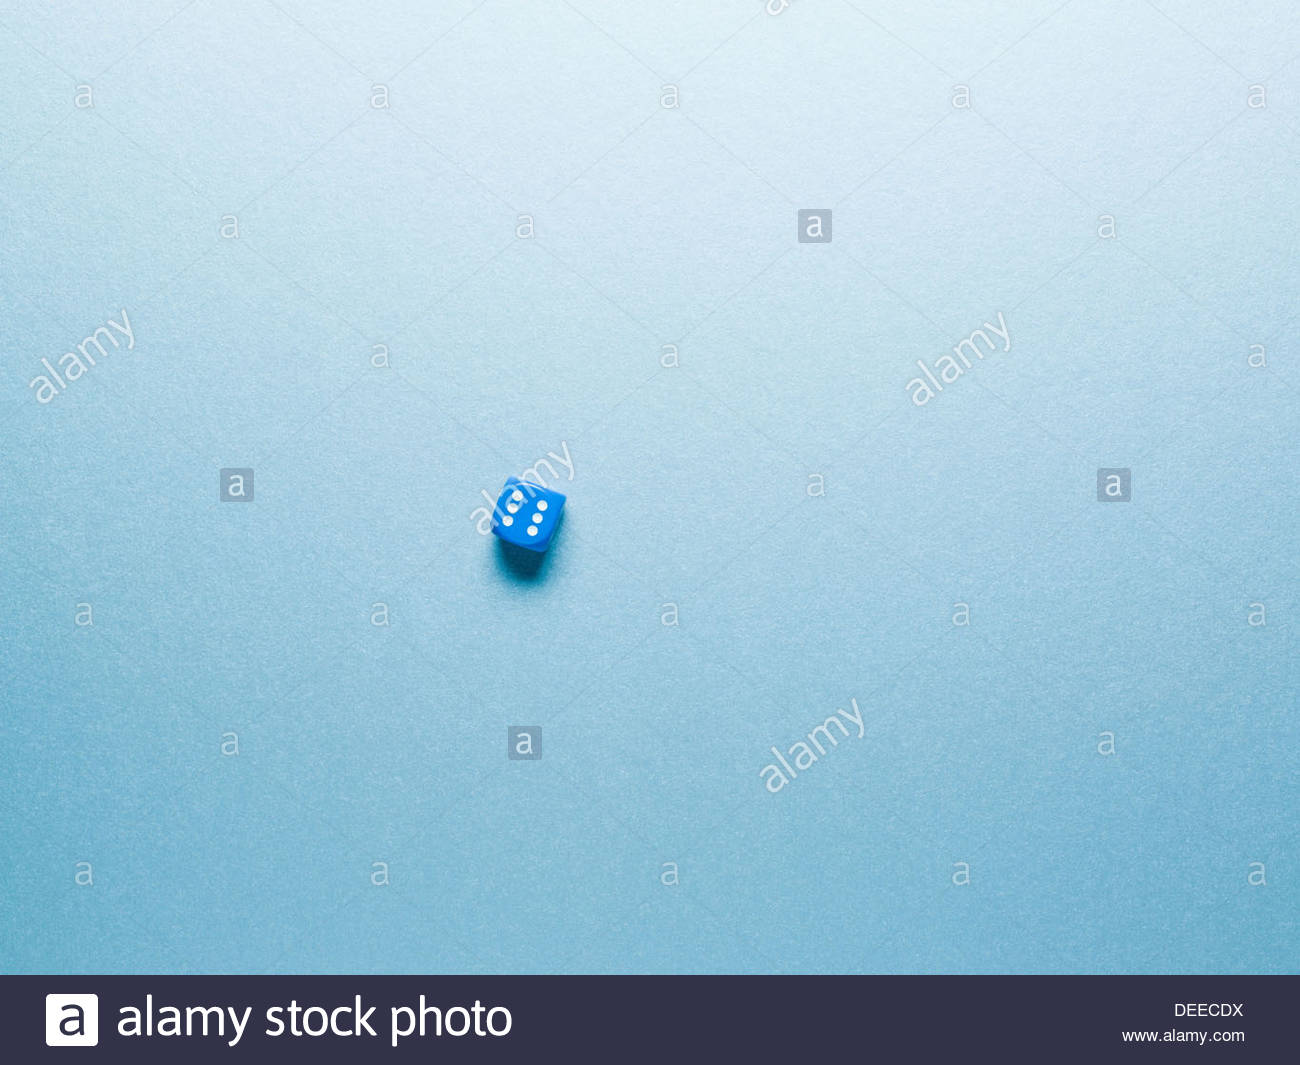 blue dice on surface - Stock Image